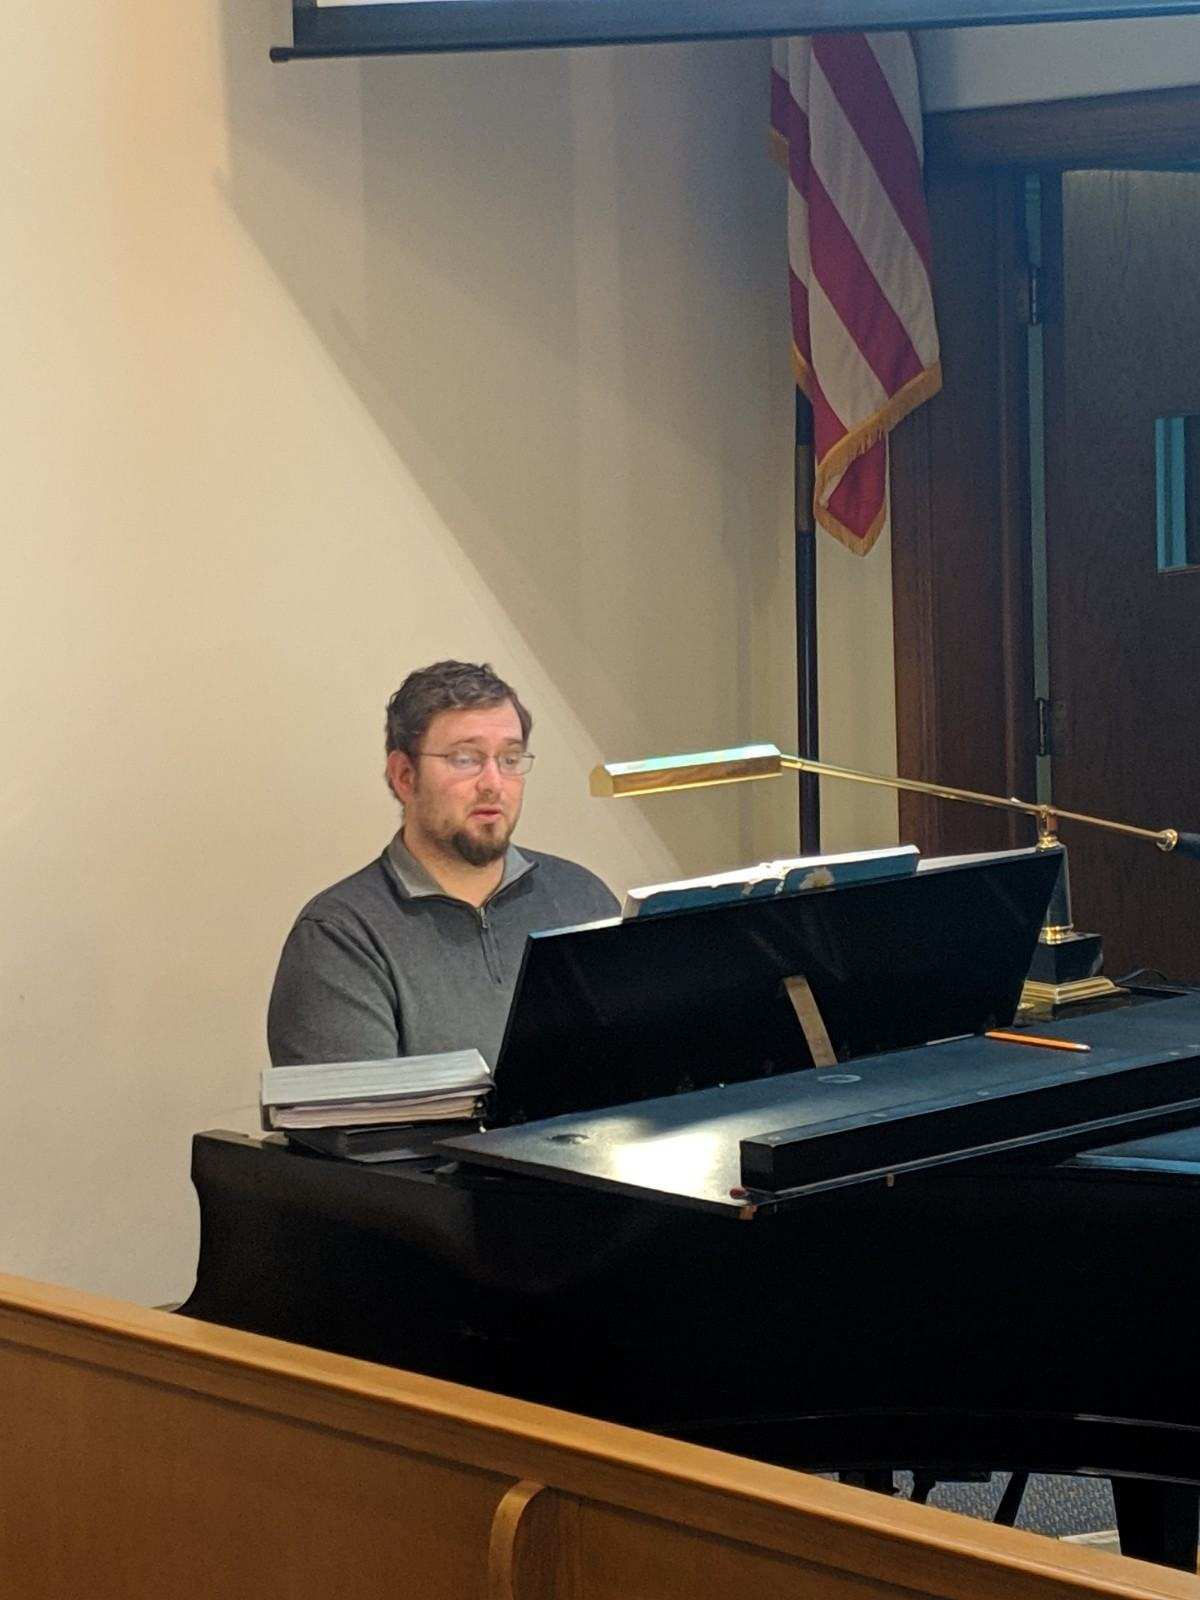 Dave Hartley on Piano.jpg